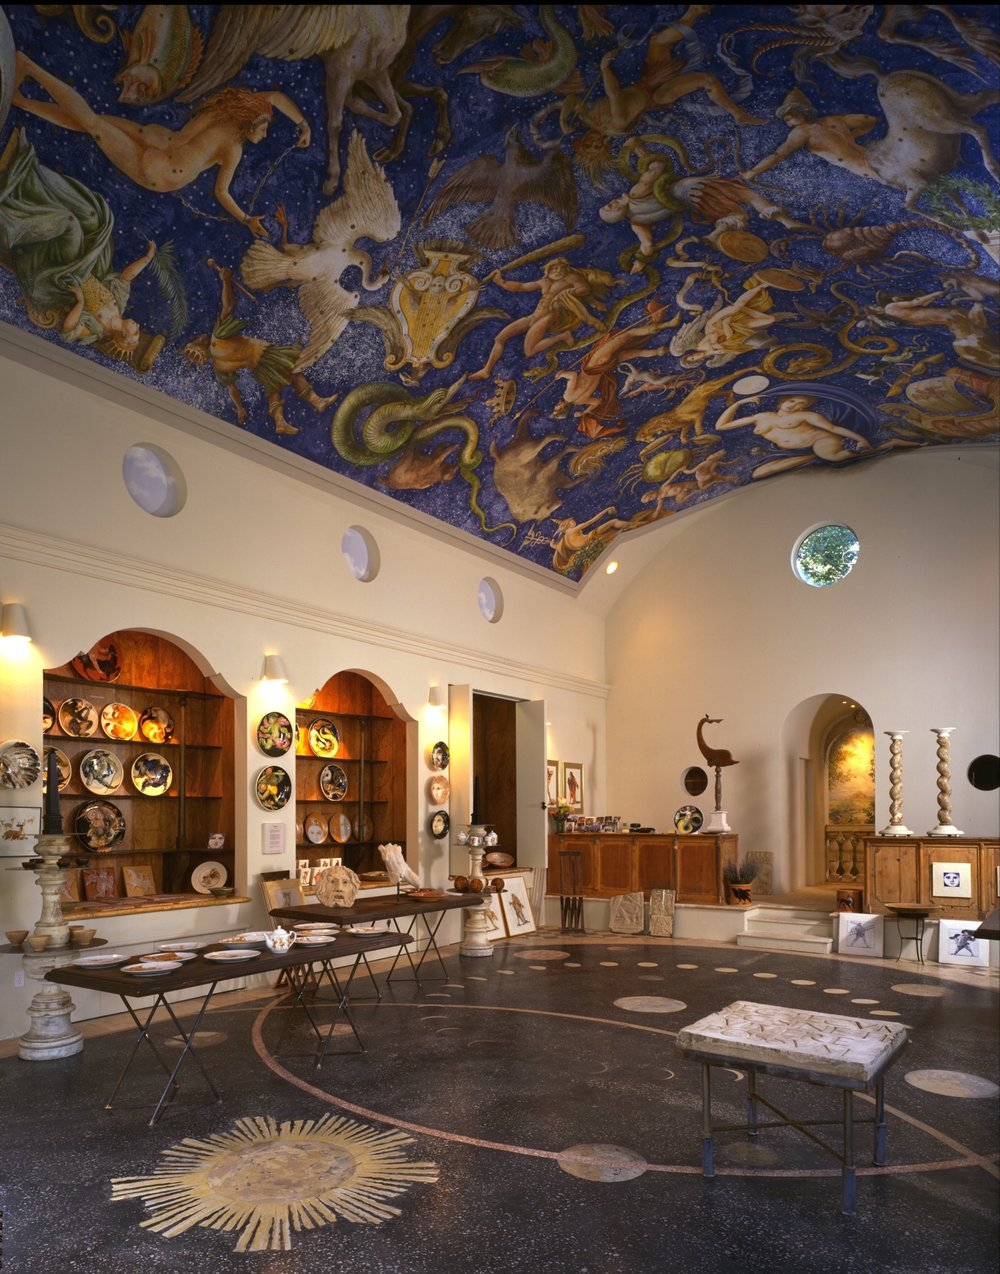 The interior of Ca' Toga Art Gallery displaying a 44 x 23 foot mural painted on the barrel-vault ceiling.